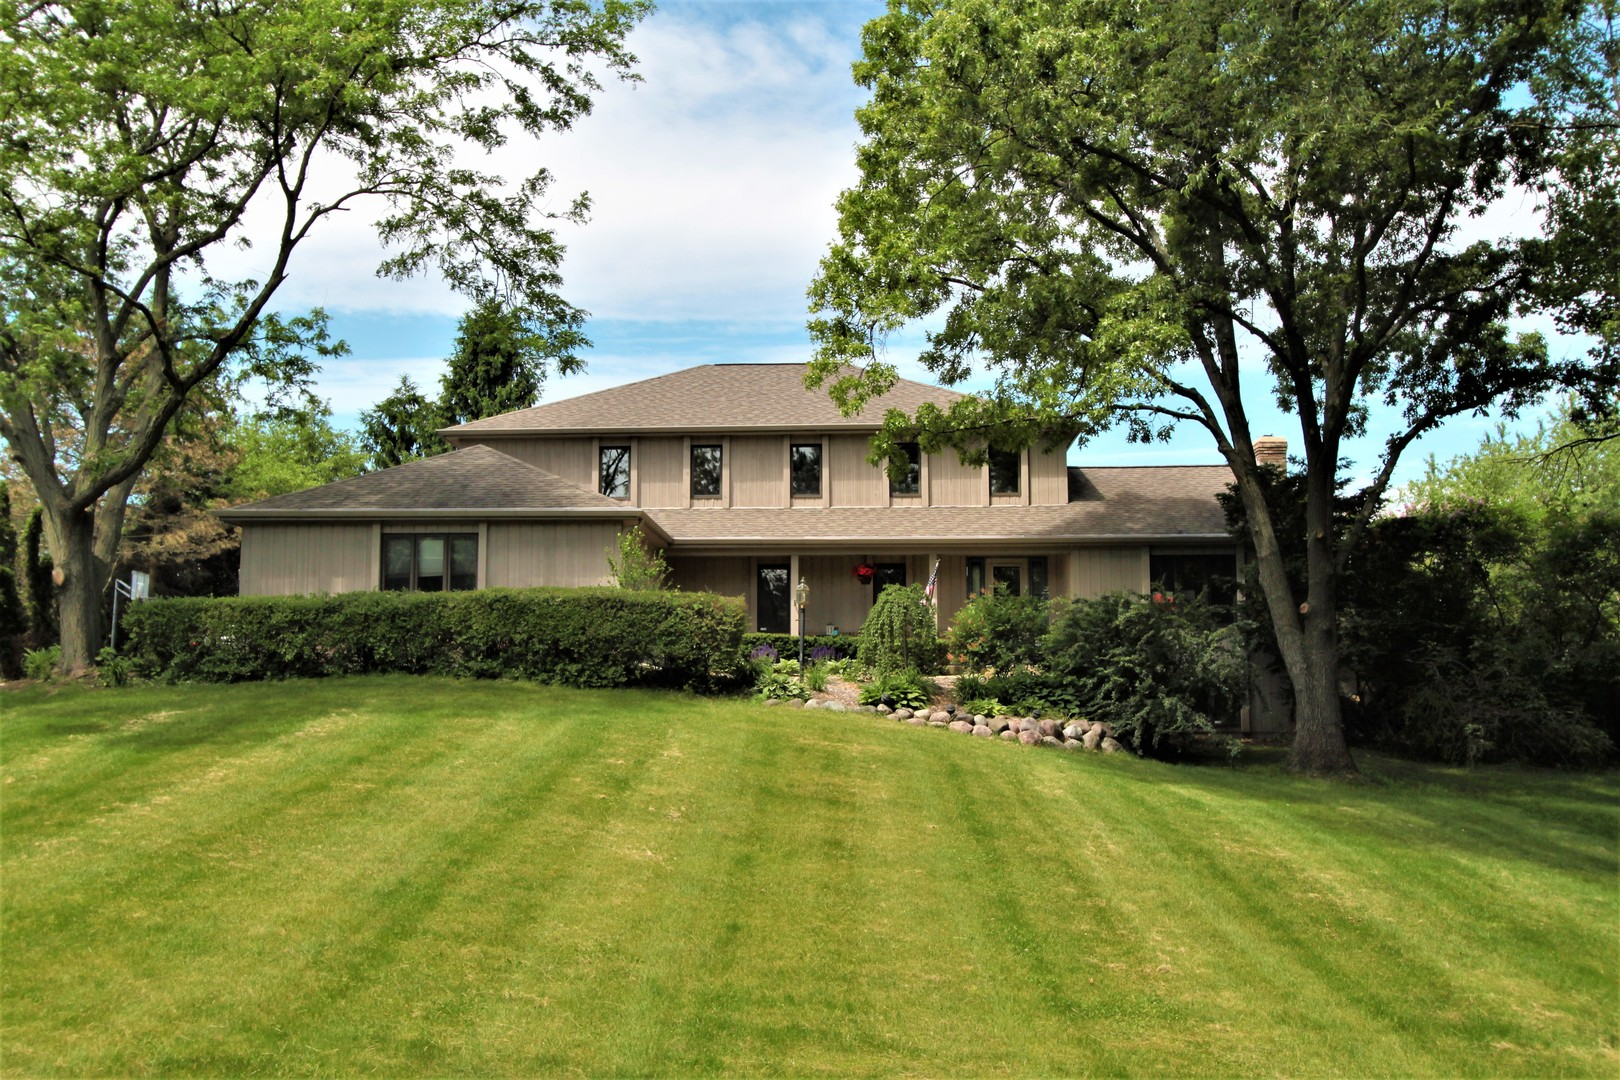 6119 S Blue Court, Crystal Lake, IL 60014